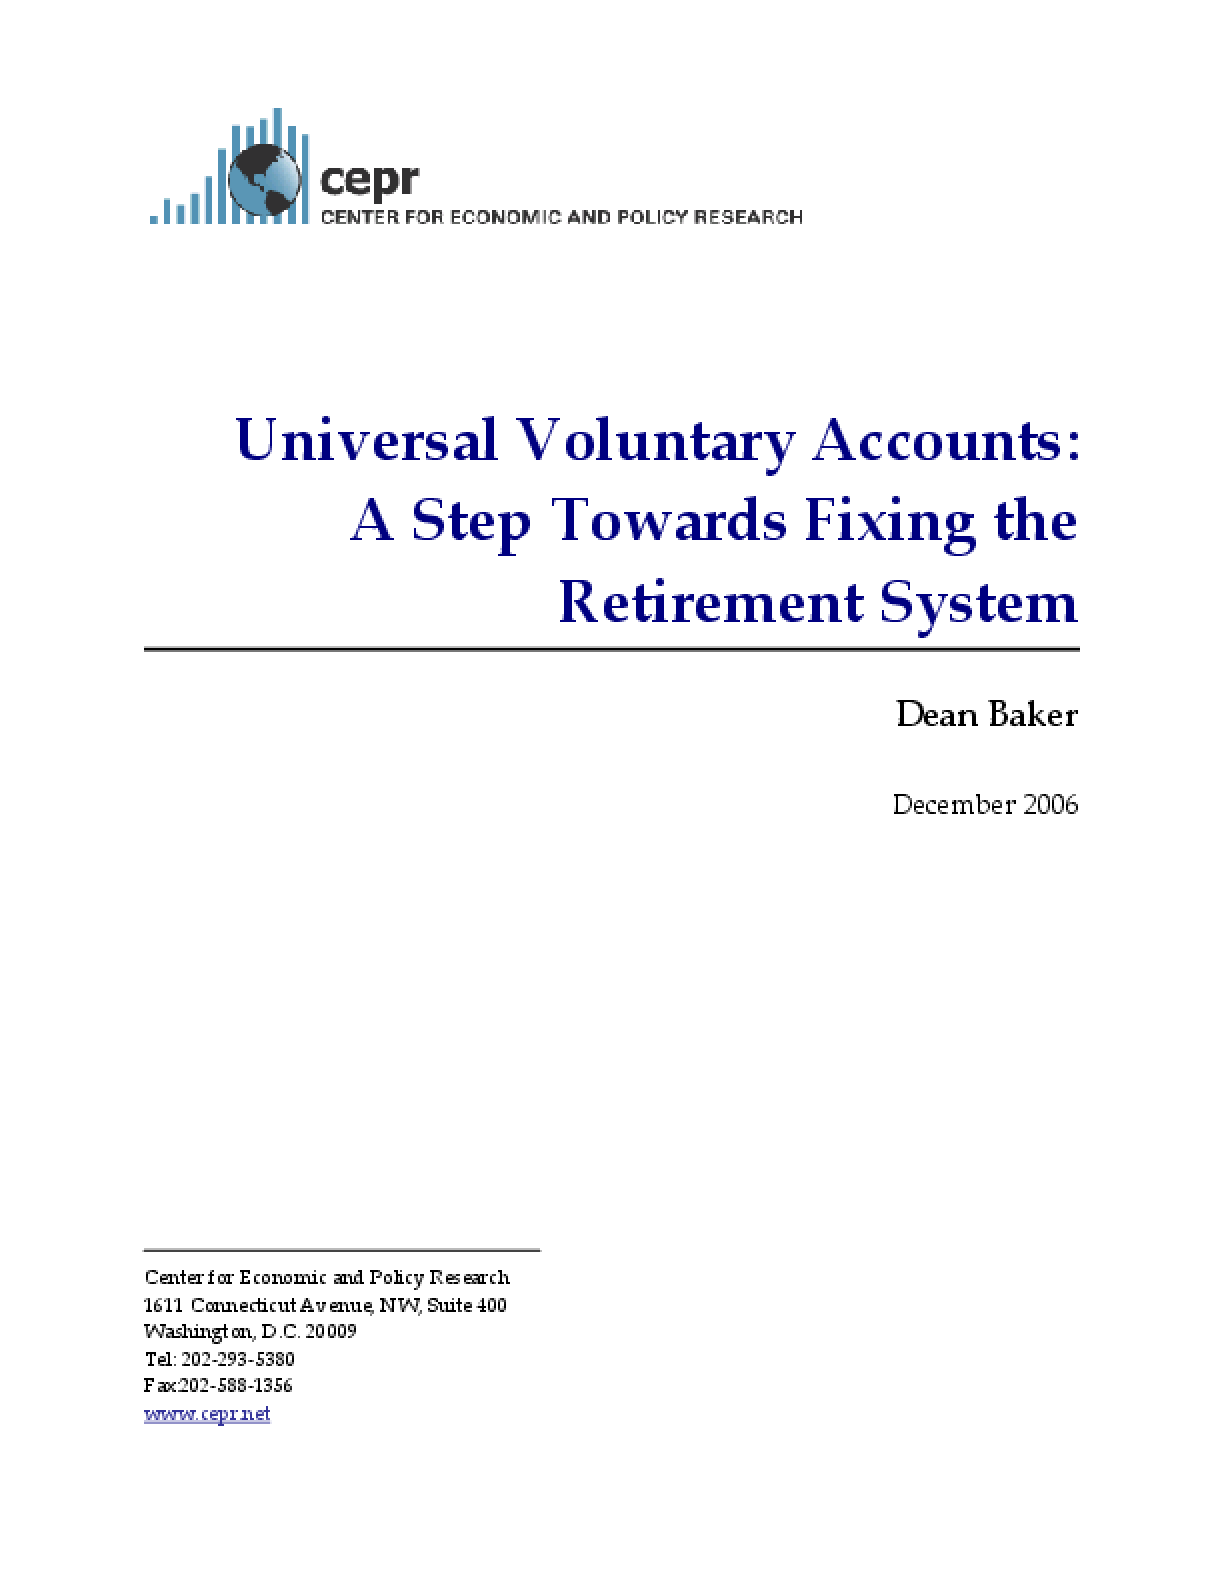 Universal Voluntary Accounts: A Step Towards Fixing the Retirement System